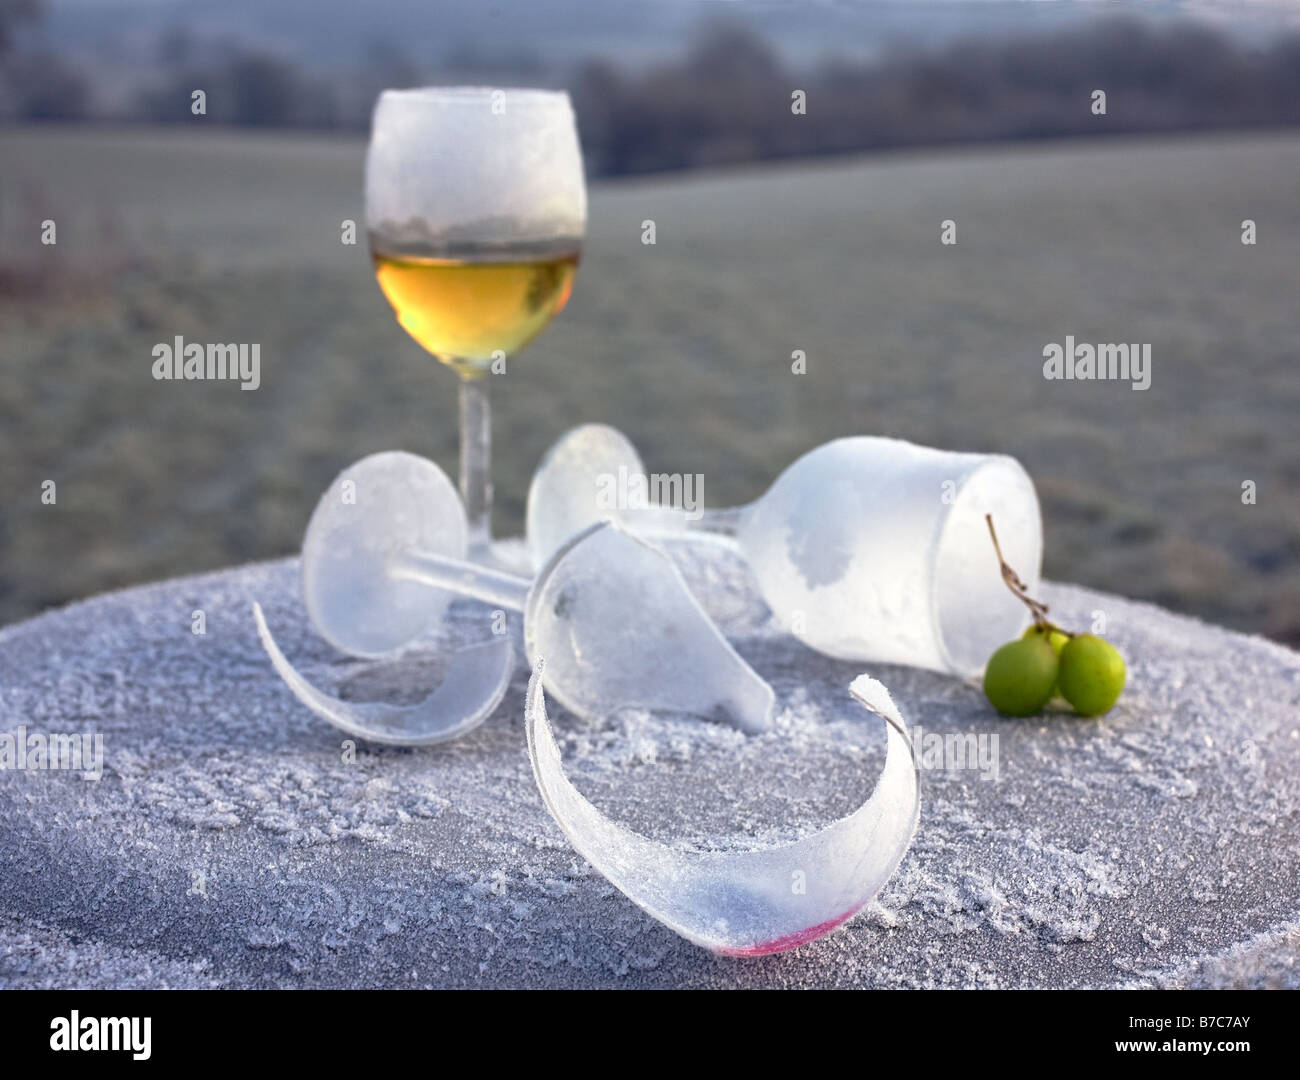 Morning-after-night-before frosted and broken wine glass party remains in frozen countryside UK Stock Photo